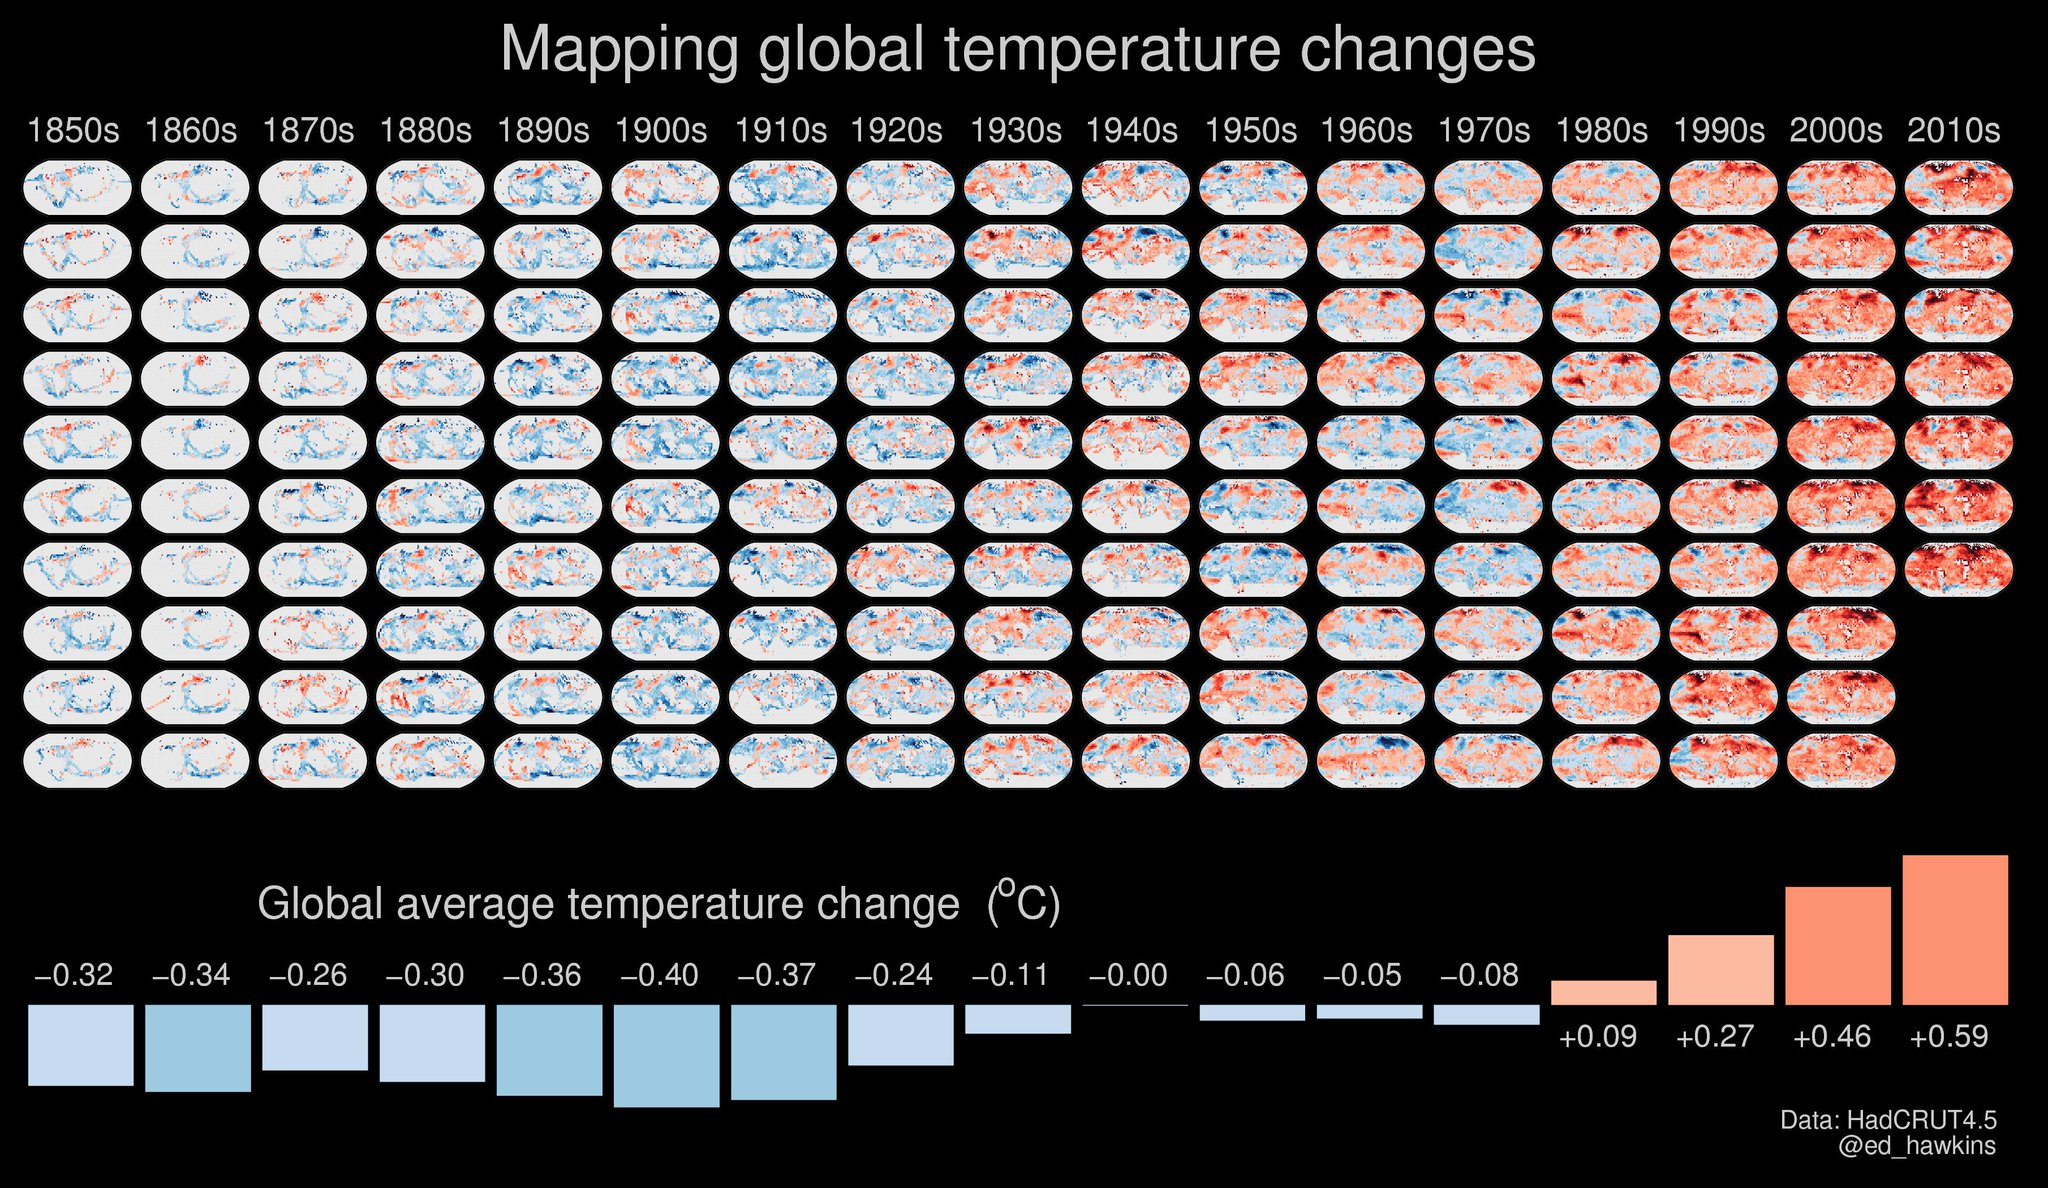 4. One of mine, all the global temperature observations for 1850-2016 mapped in a single figure. Can you see a trend? https://t.co/yixUa8ubLE